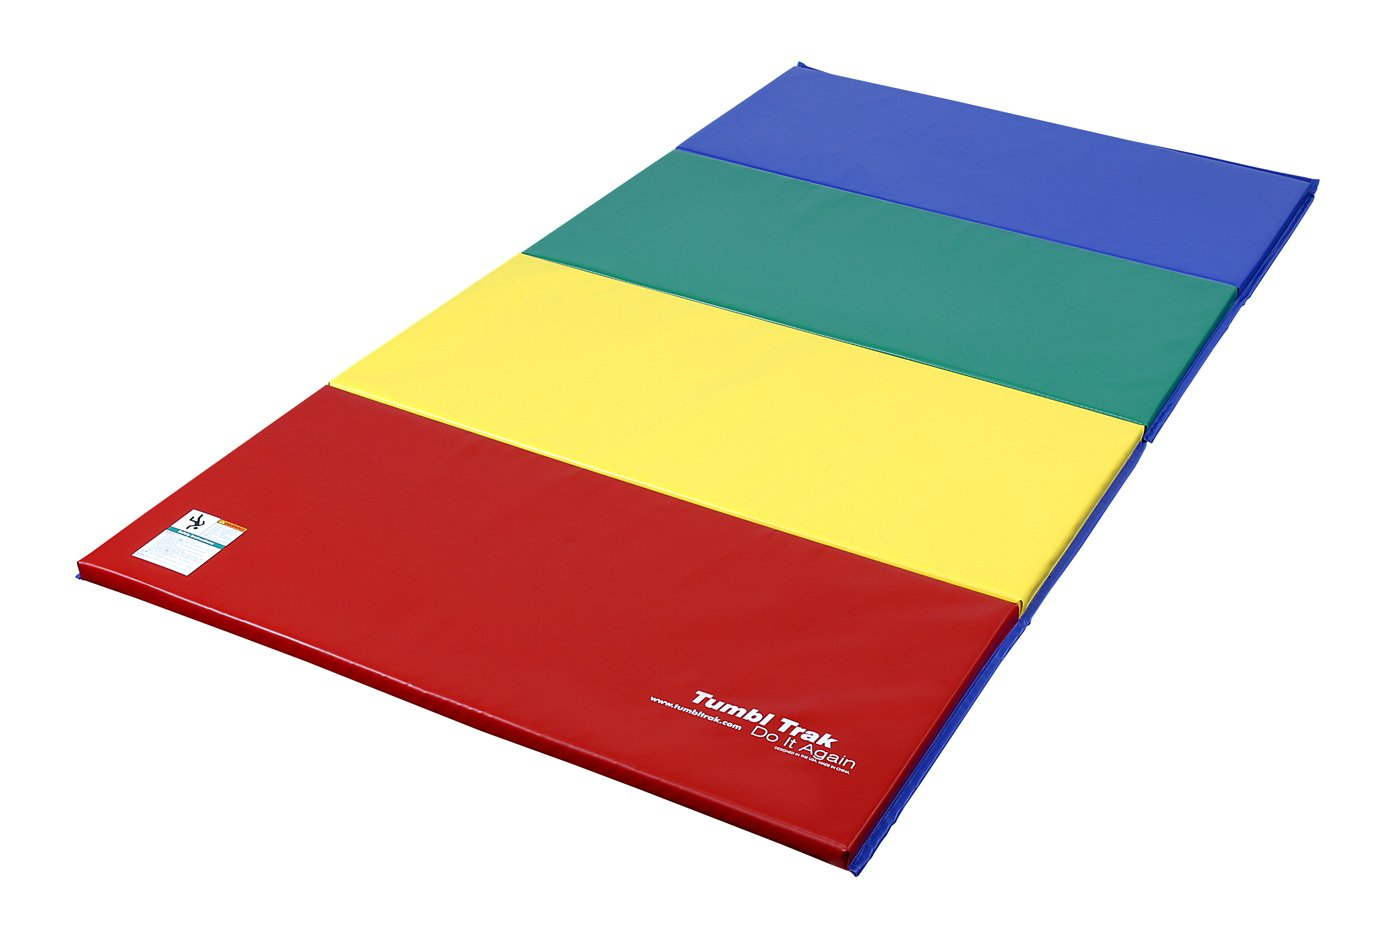 tumbl trak folding gymnastics mat 12m x 24m amazoncouk sports u0026 outdoors